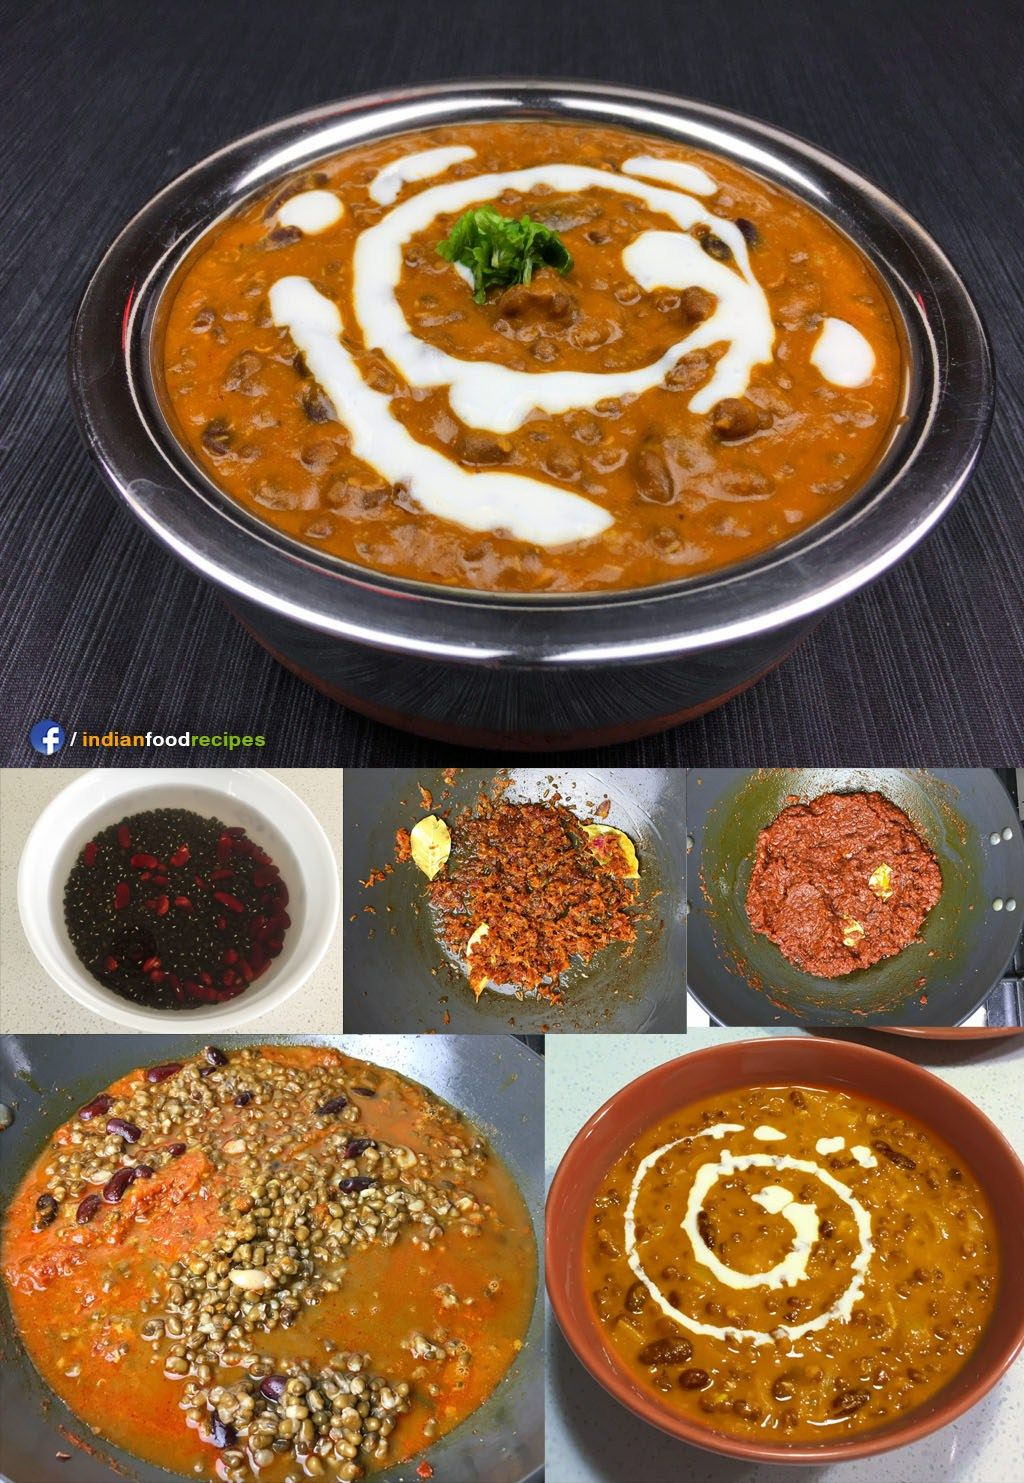 Dal makhani recipe step by step pictures all indian food recipes dal makhani recipe step by step pictures forumfinder Image collections